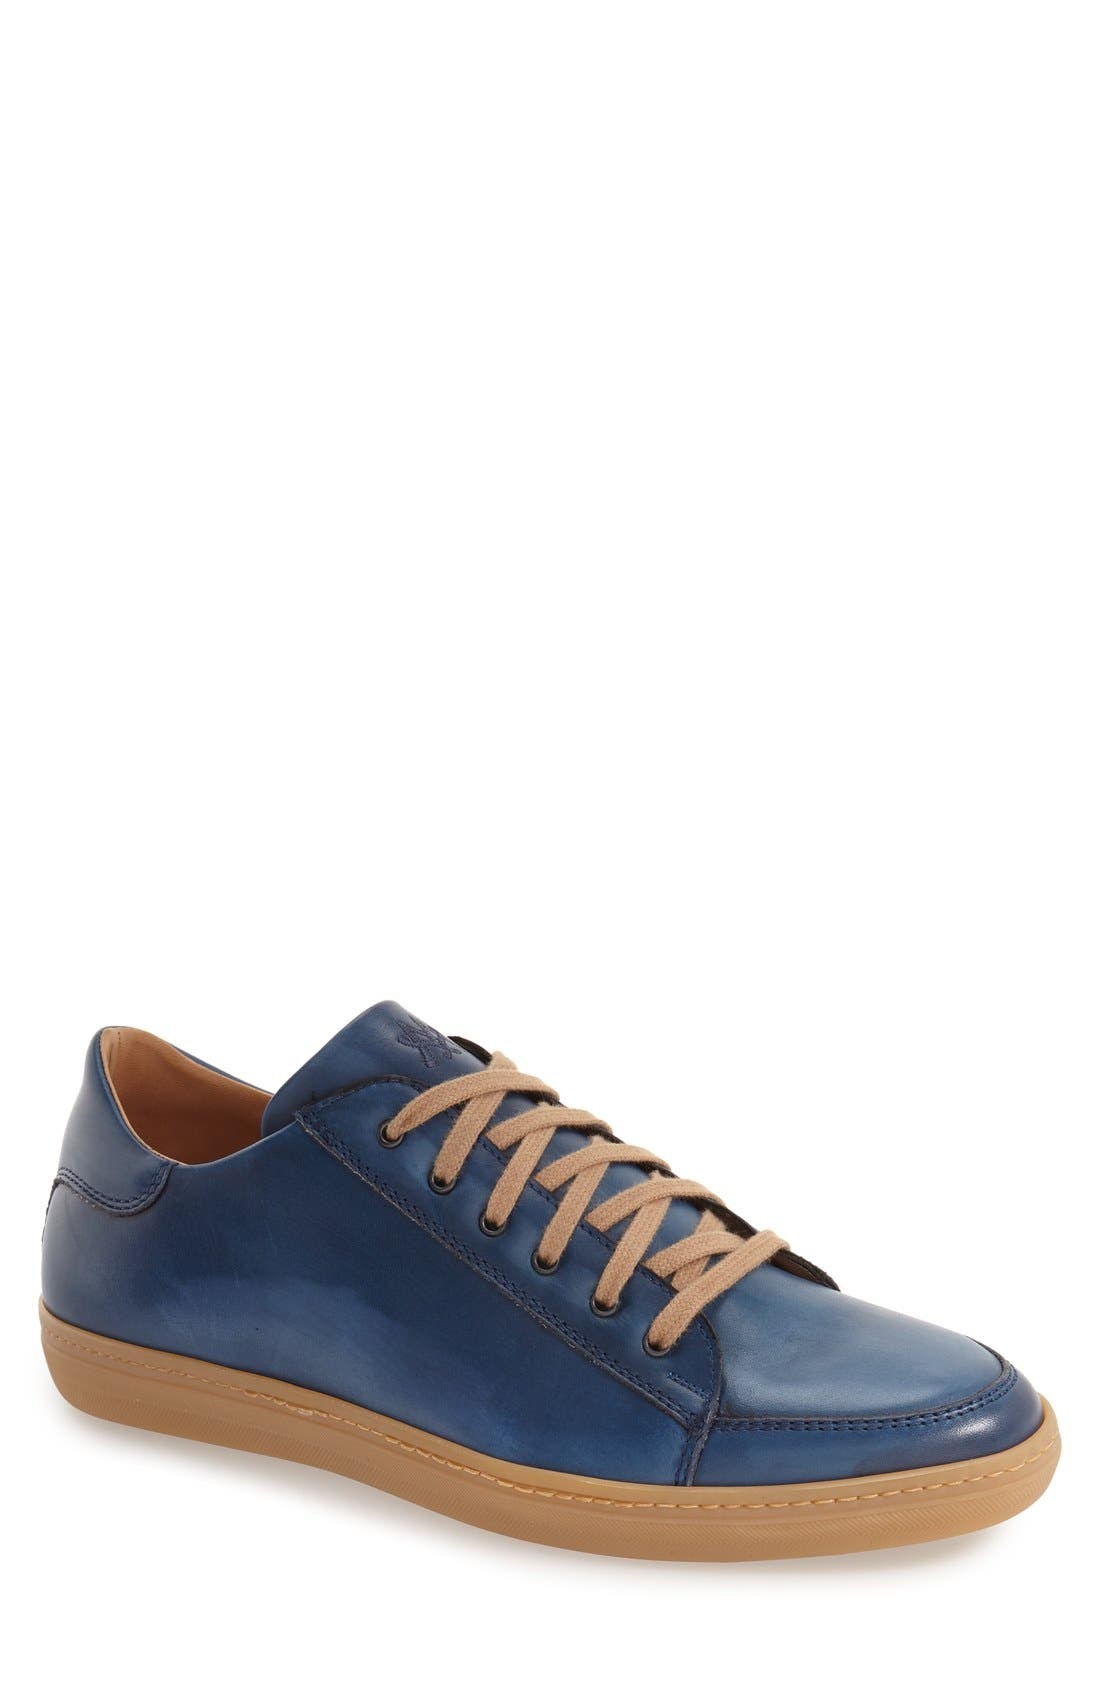 'Masi' Lace-Up Sneaker,                             Main thumbnail 1, color,                             BLUE